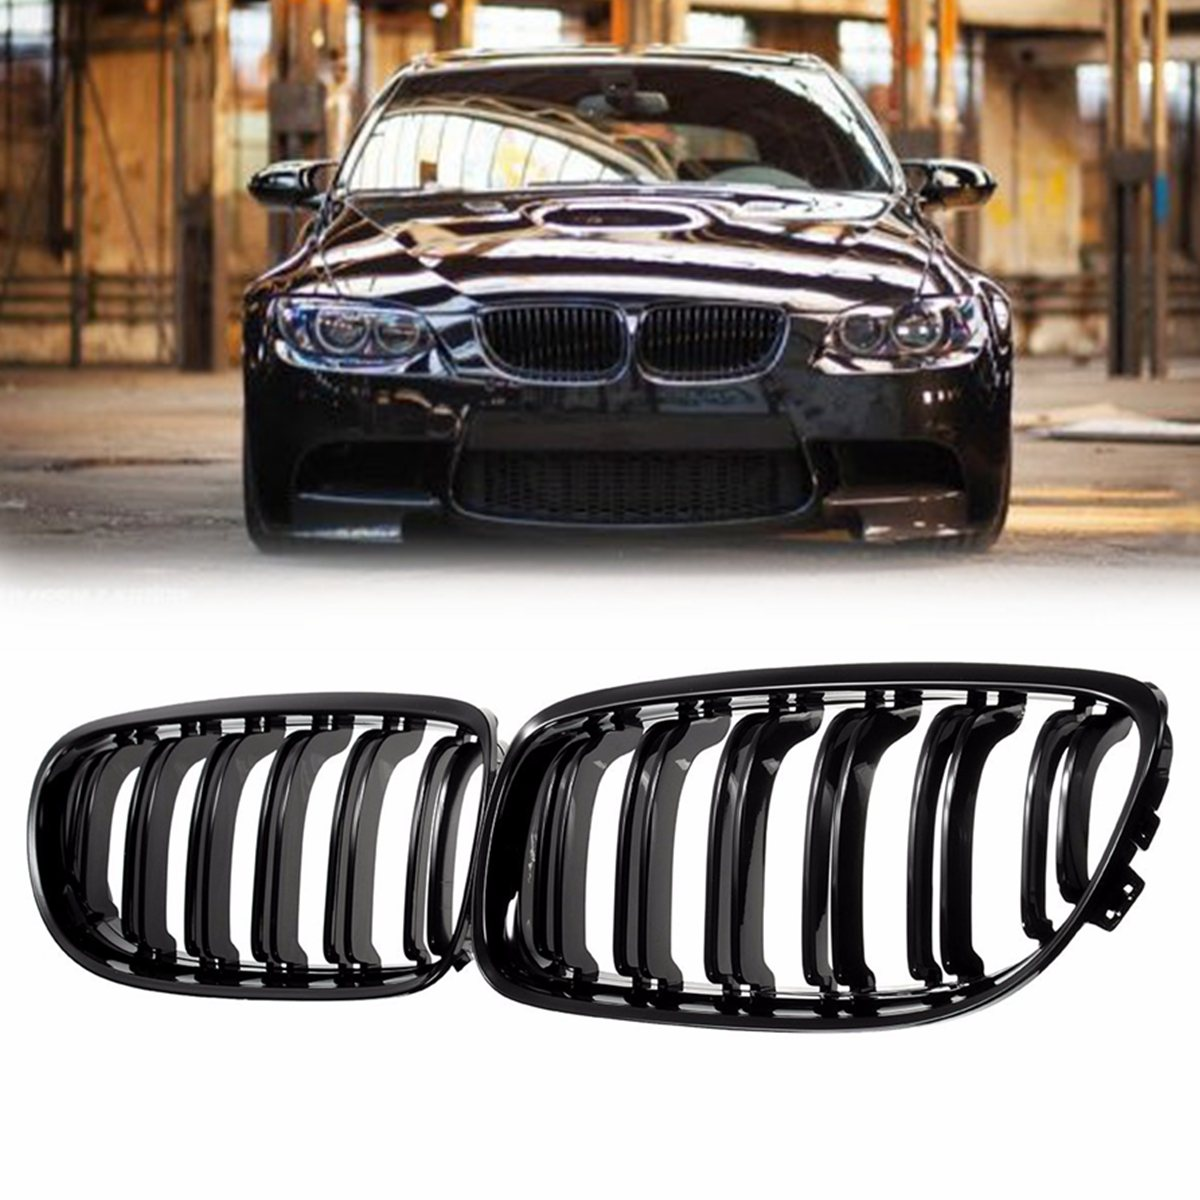 Pair Gloss Black Car Front Grille Grill For BMW E90 LCI 3 Series Sedan Wagon 2009